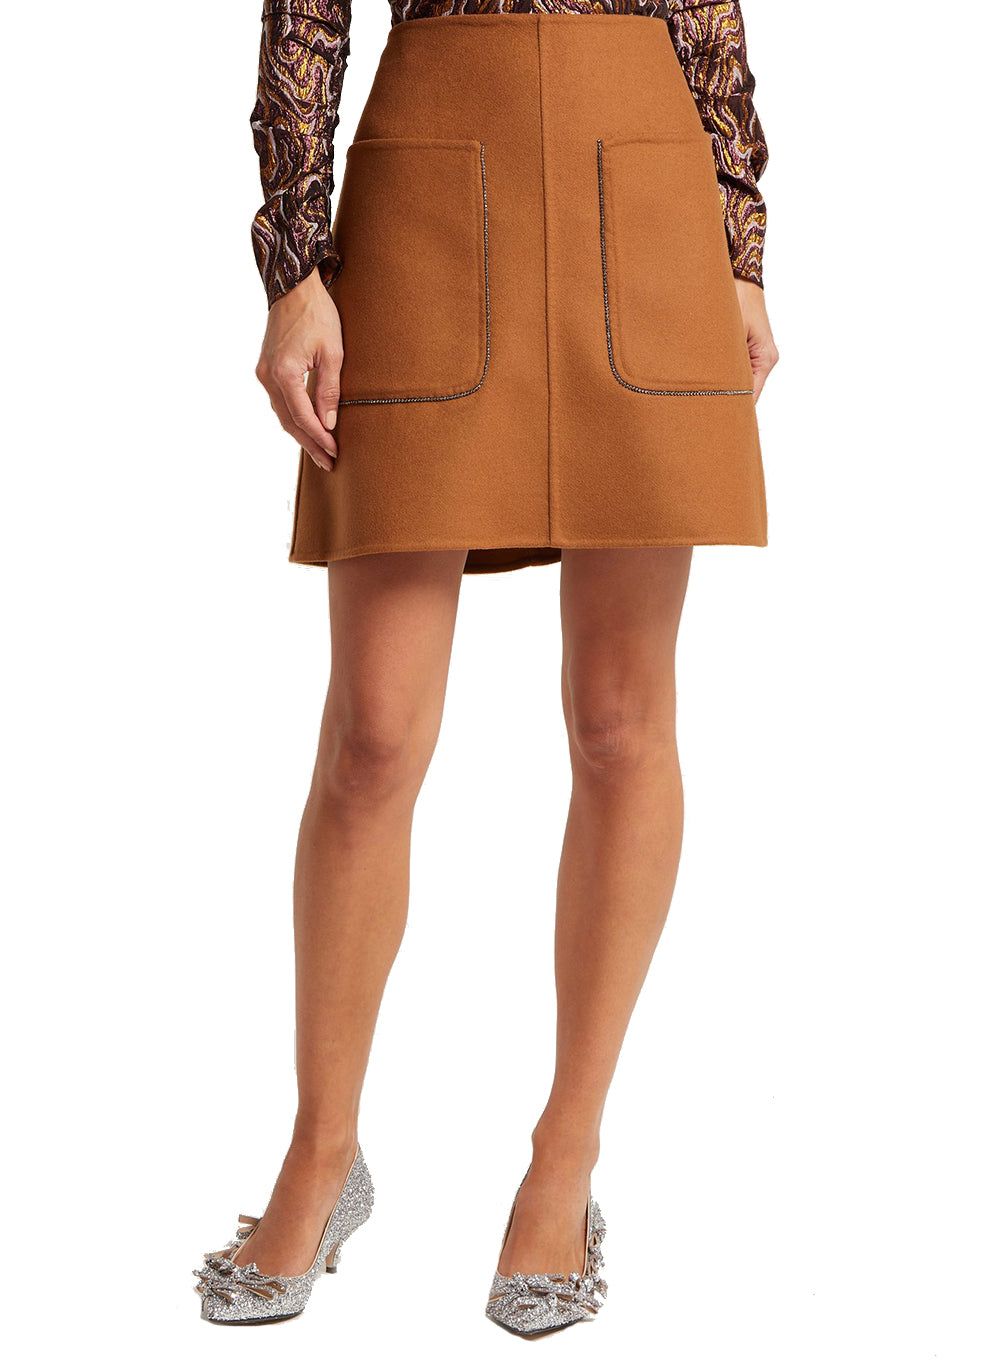 N°21 | Midi A-Line Skirt in Camel